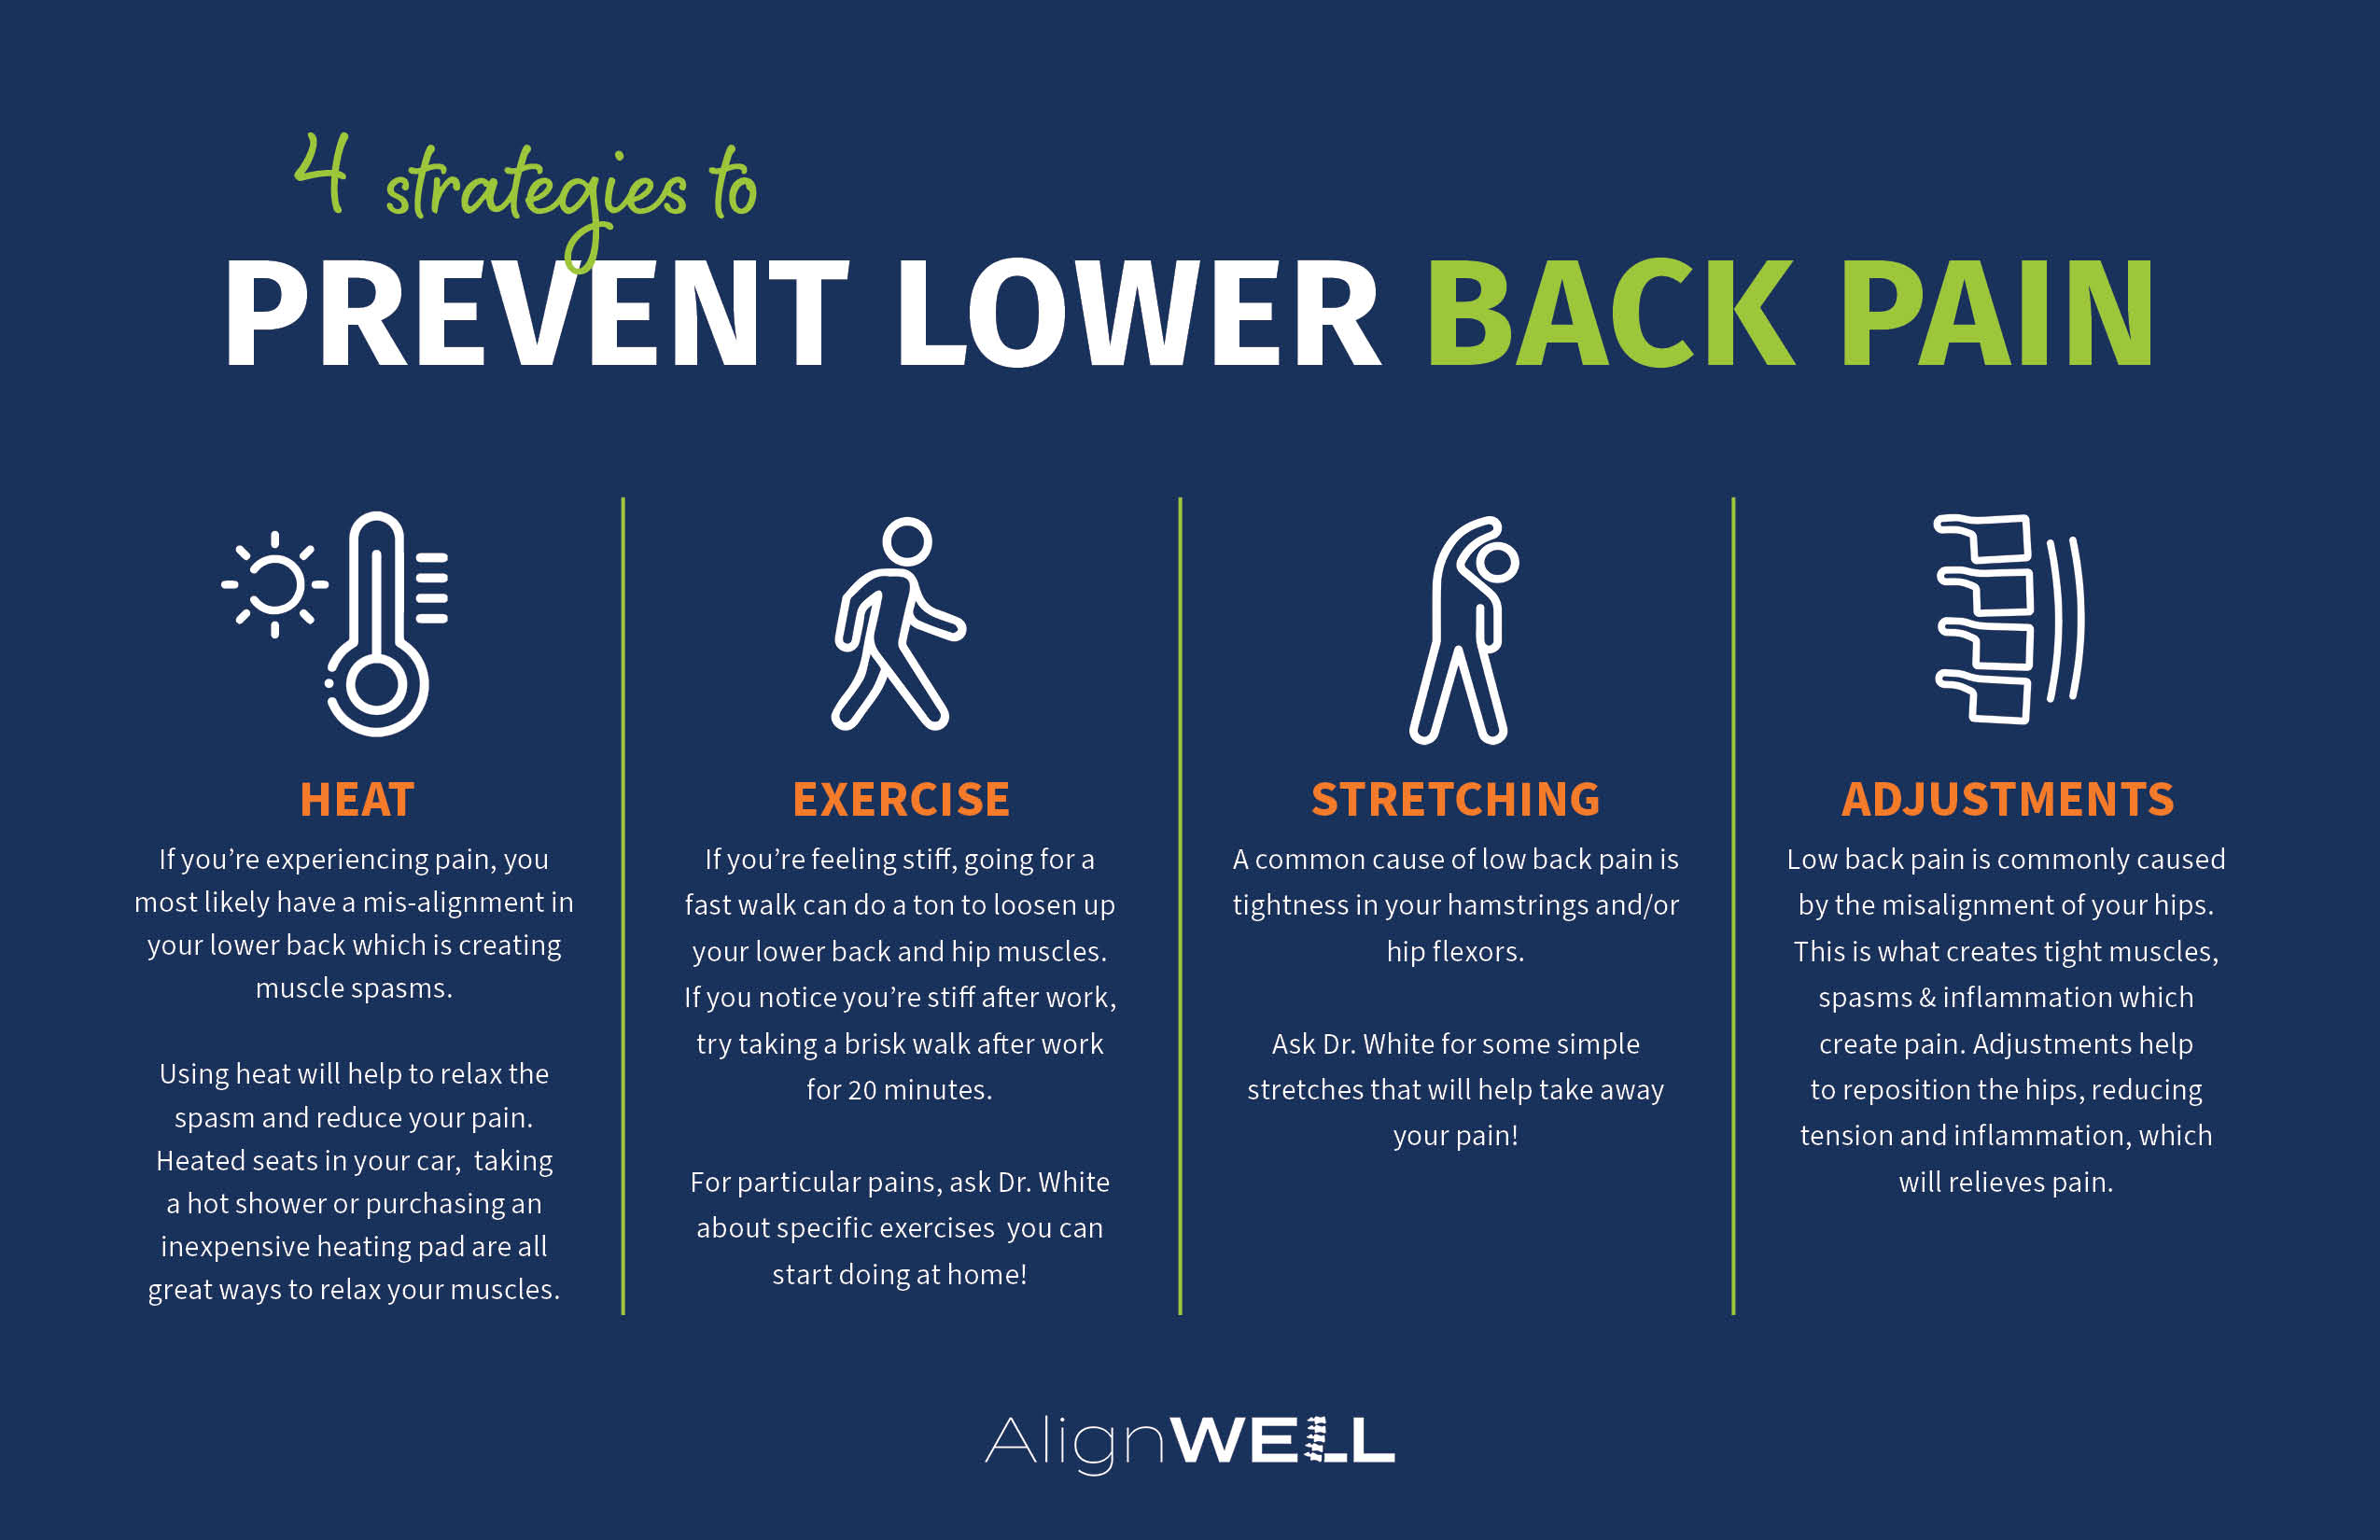 Strategies to prevent Lower Back Pain